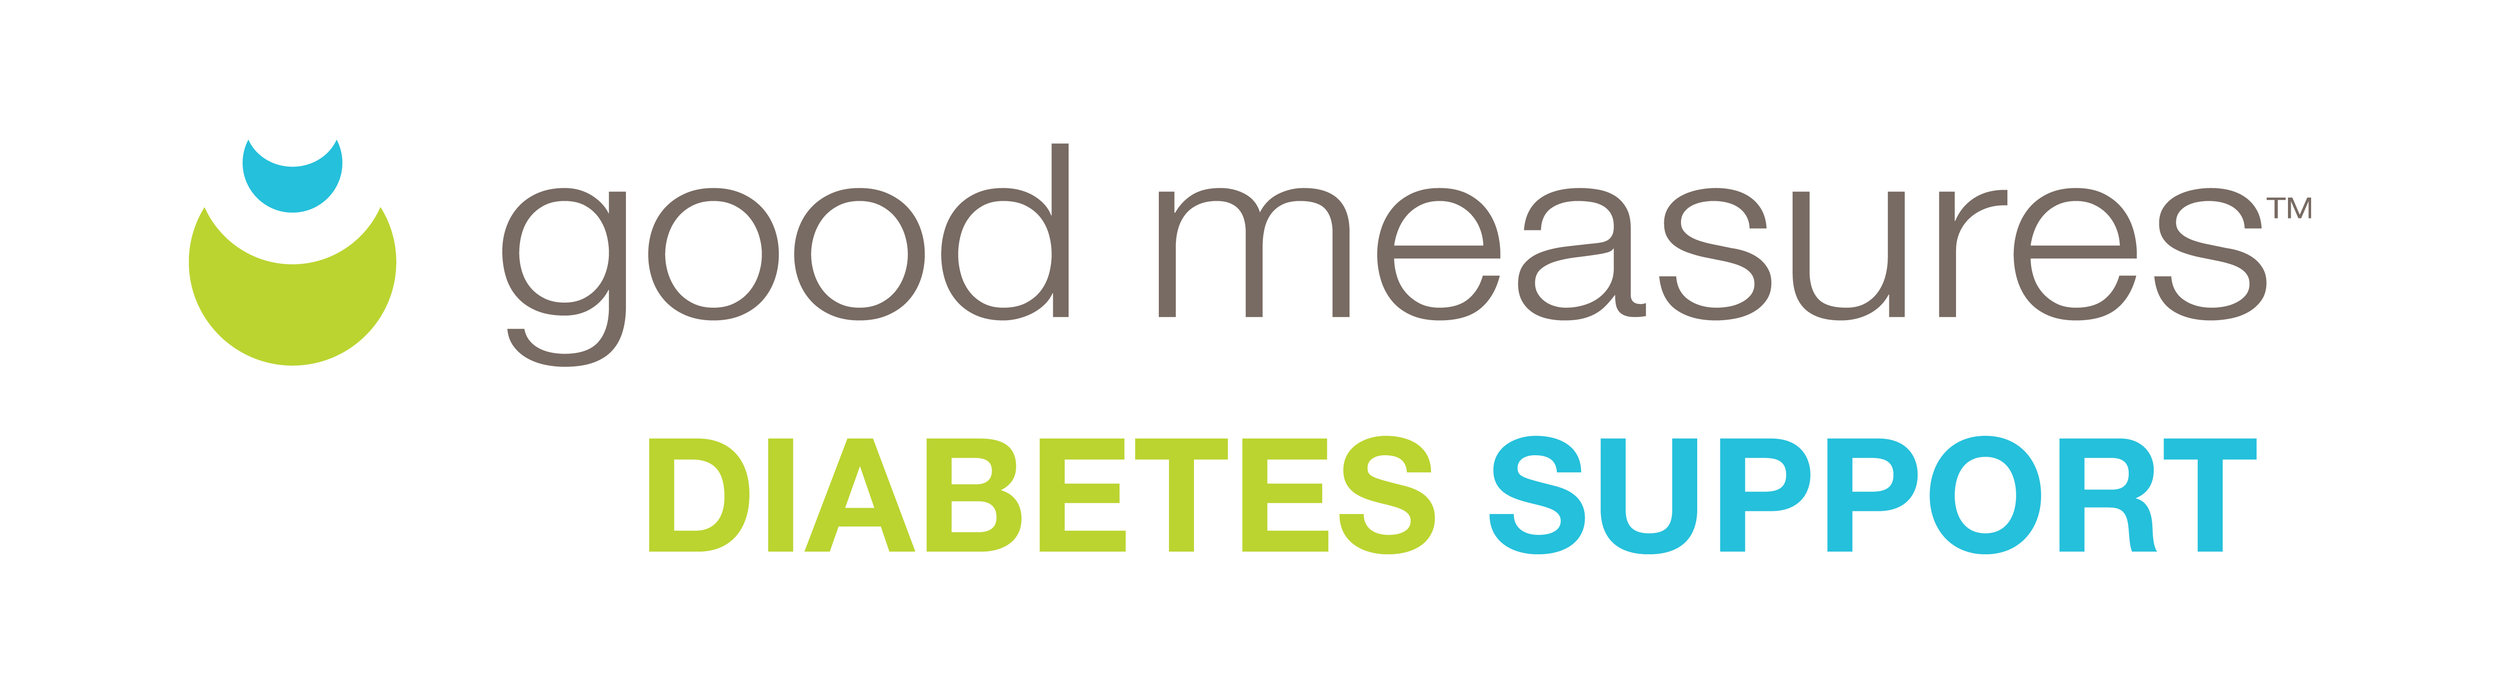 Good Measures Diabetes Suport Logo RGB copy.jpg